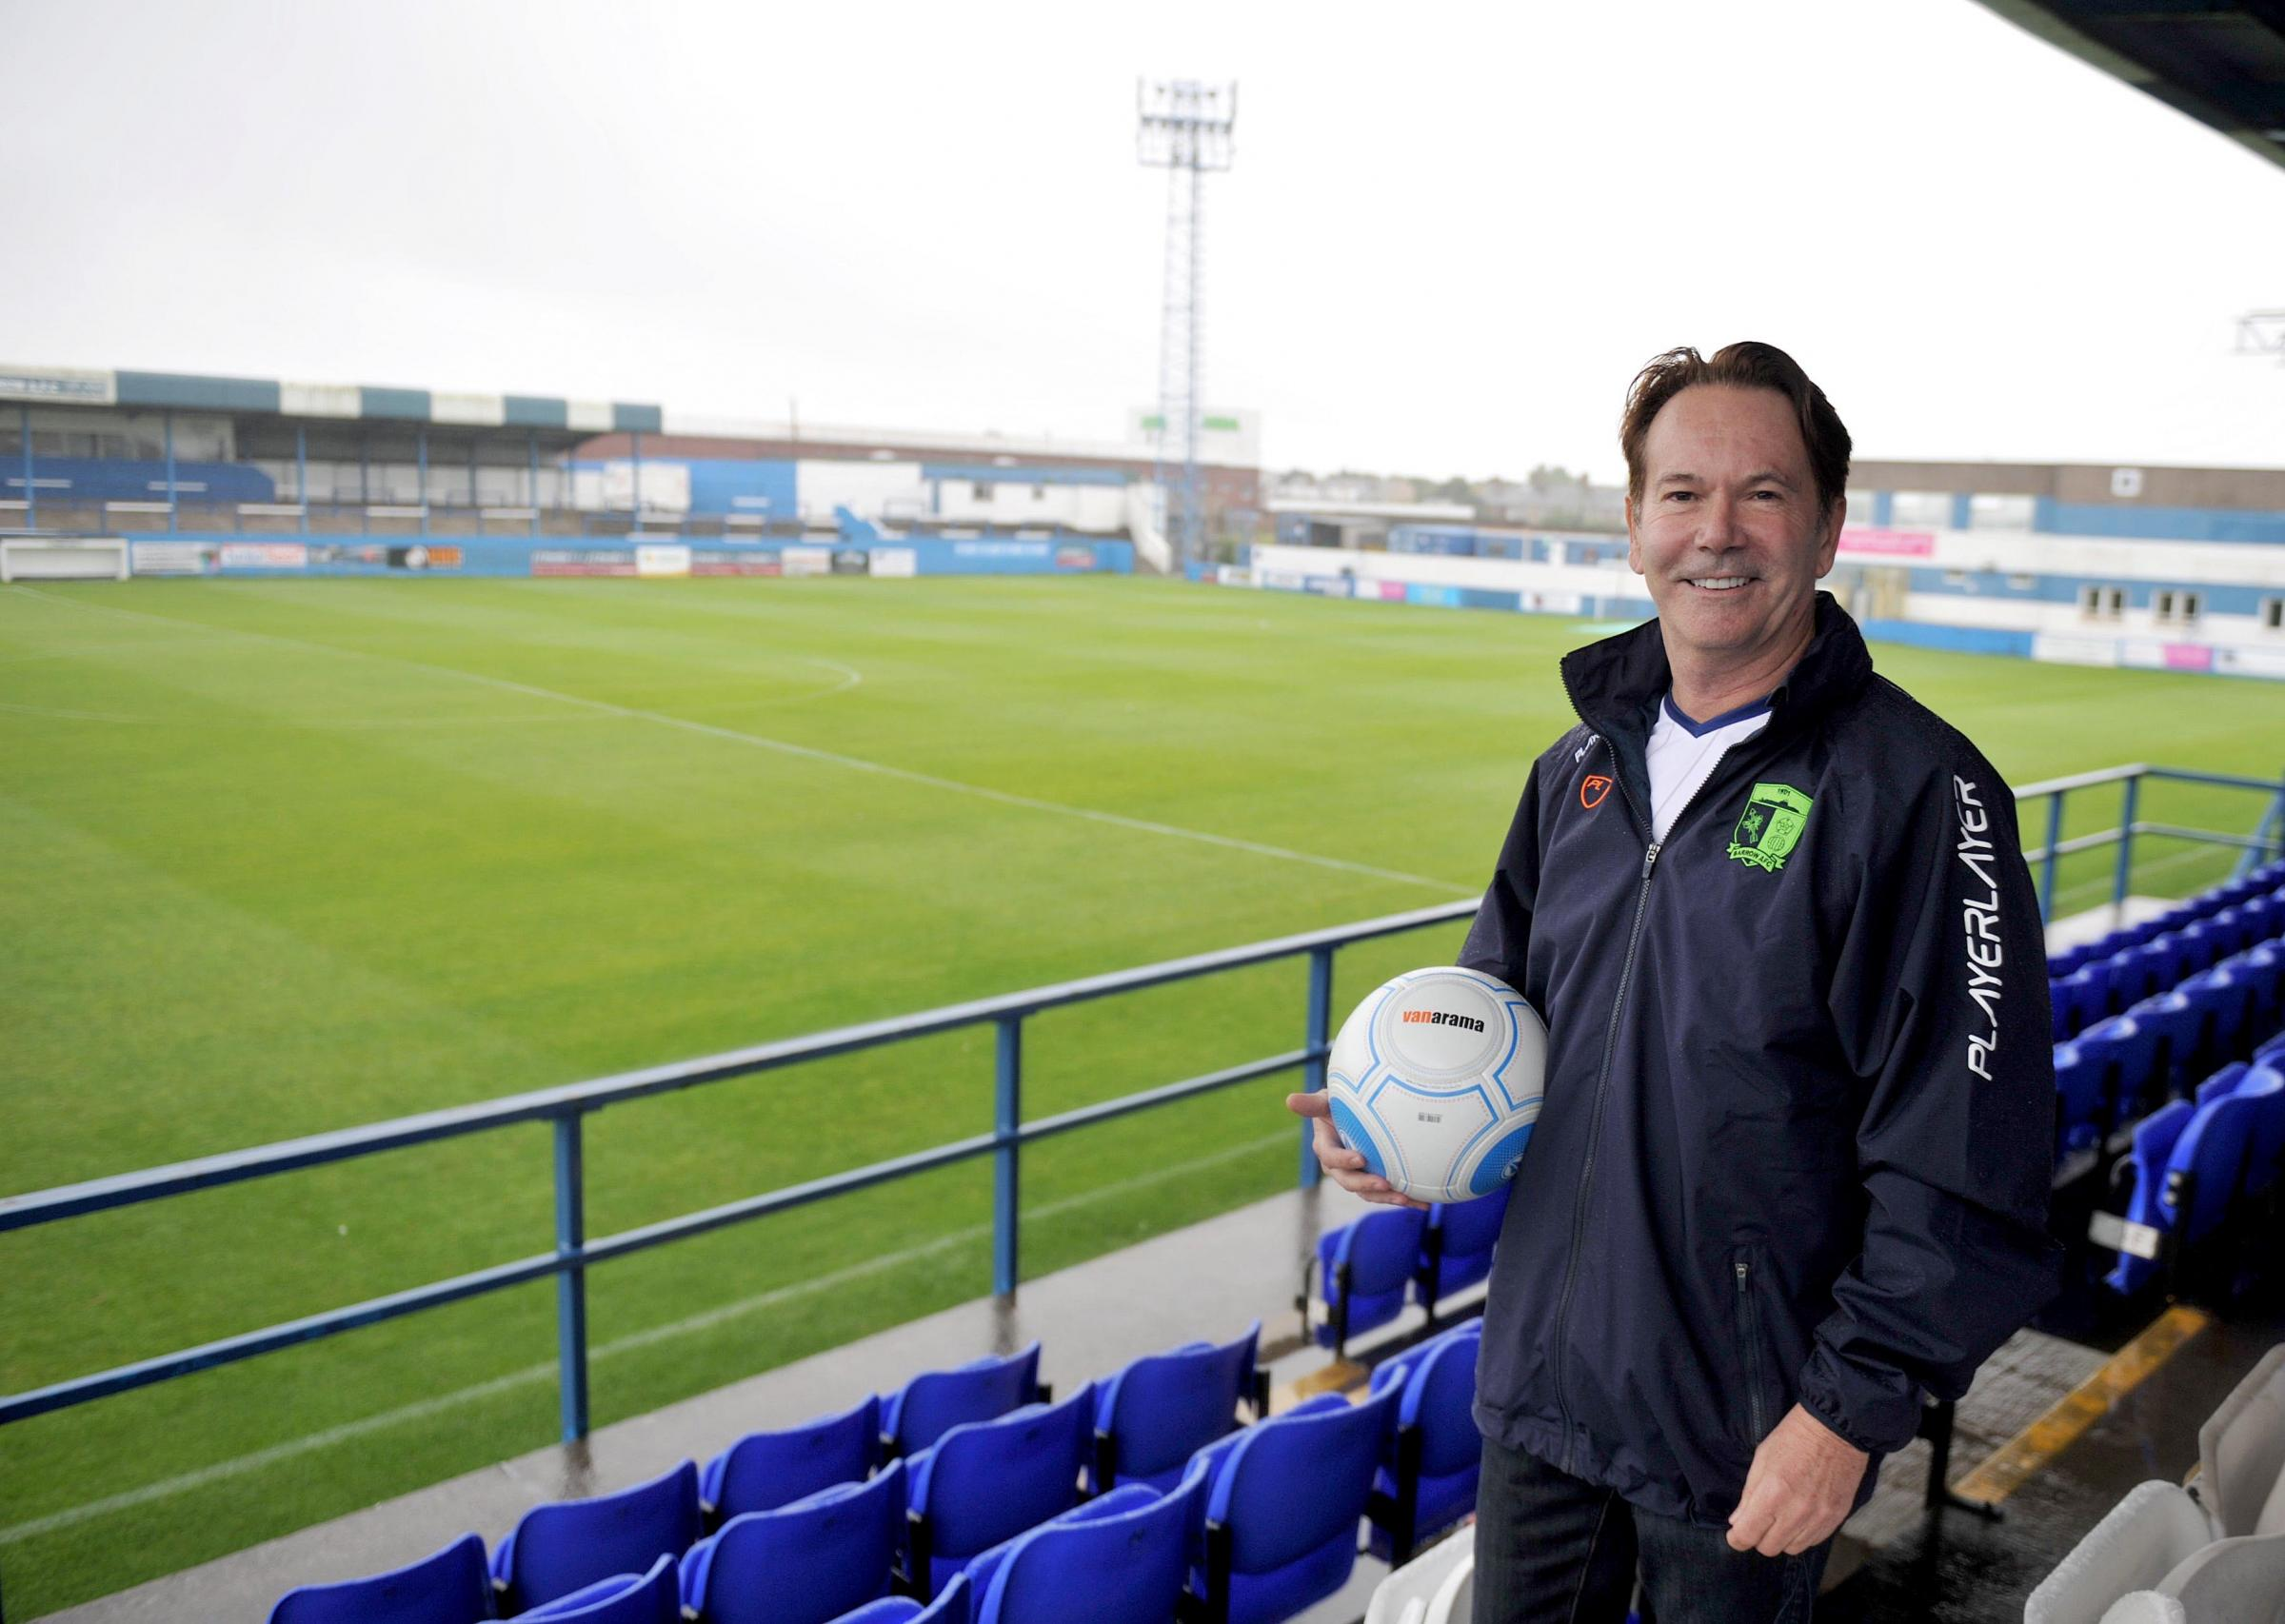 MOVING ON: Paul Casson's decision to step down as Barrow AFC chairman meant Raiders sponsor Paul Hornby took over at interim chairman